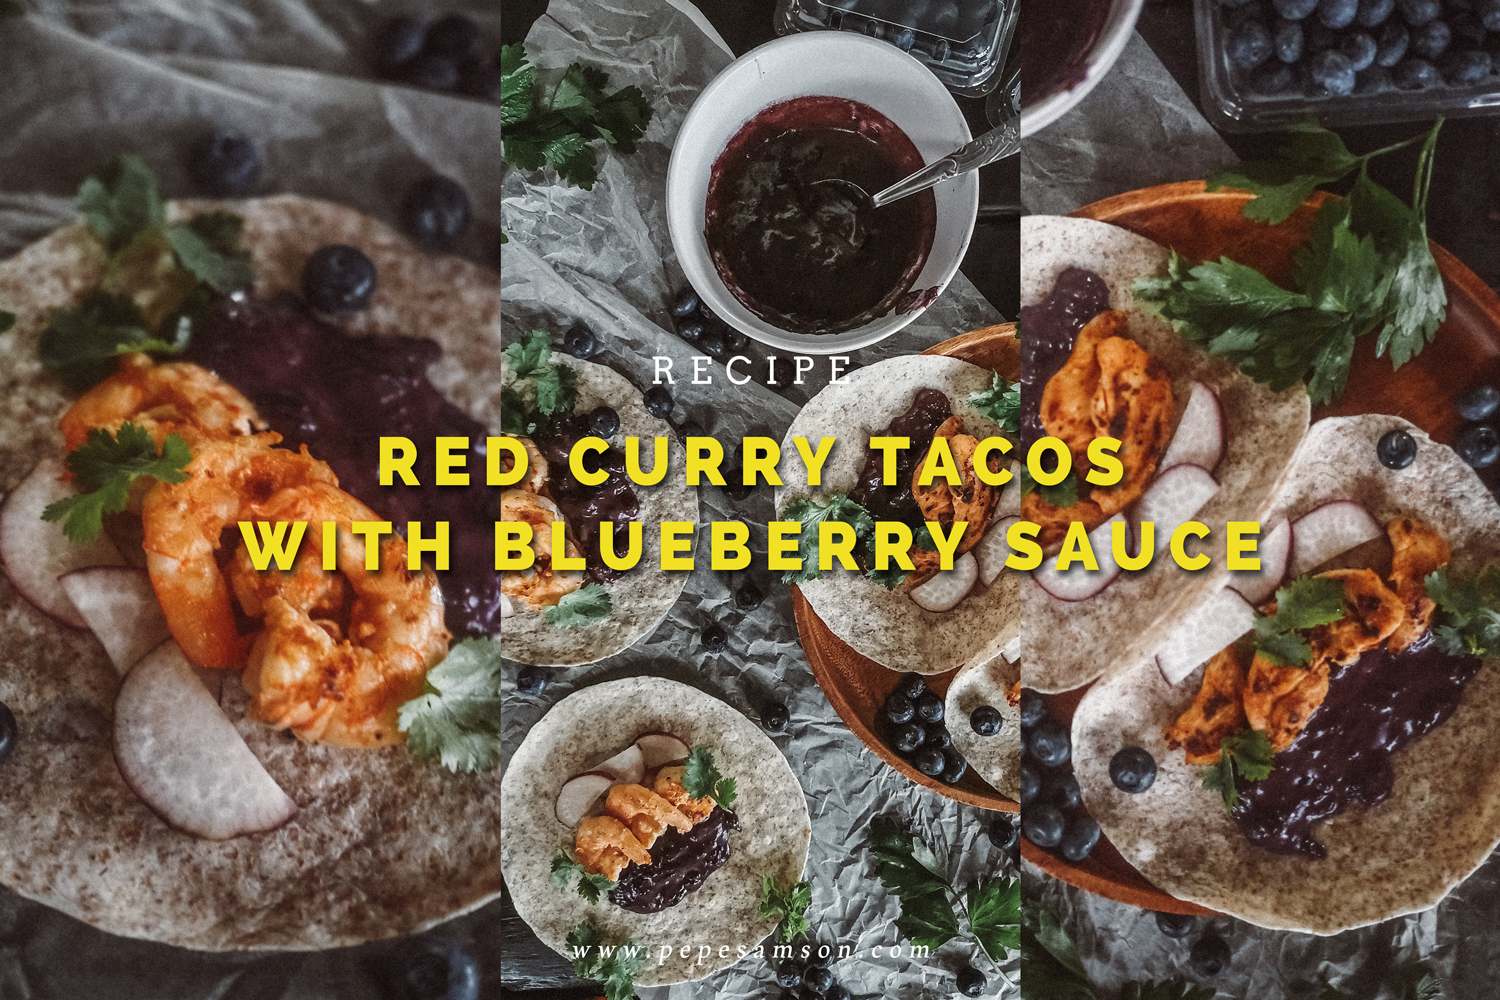 Recipe: Red Curry Tacos with Blueberry Sauce